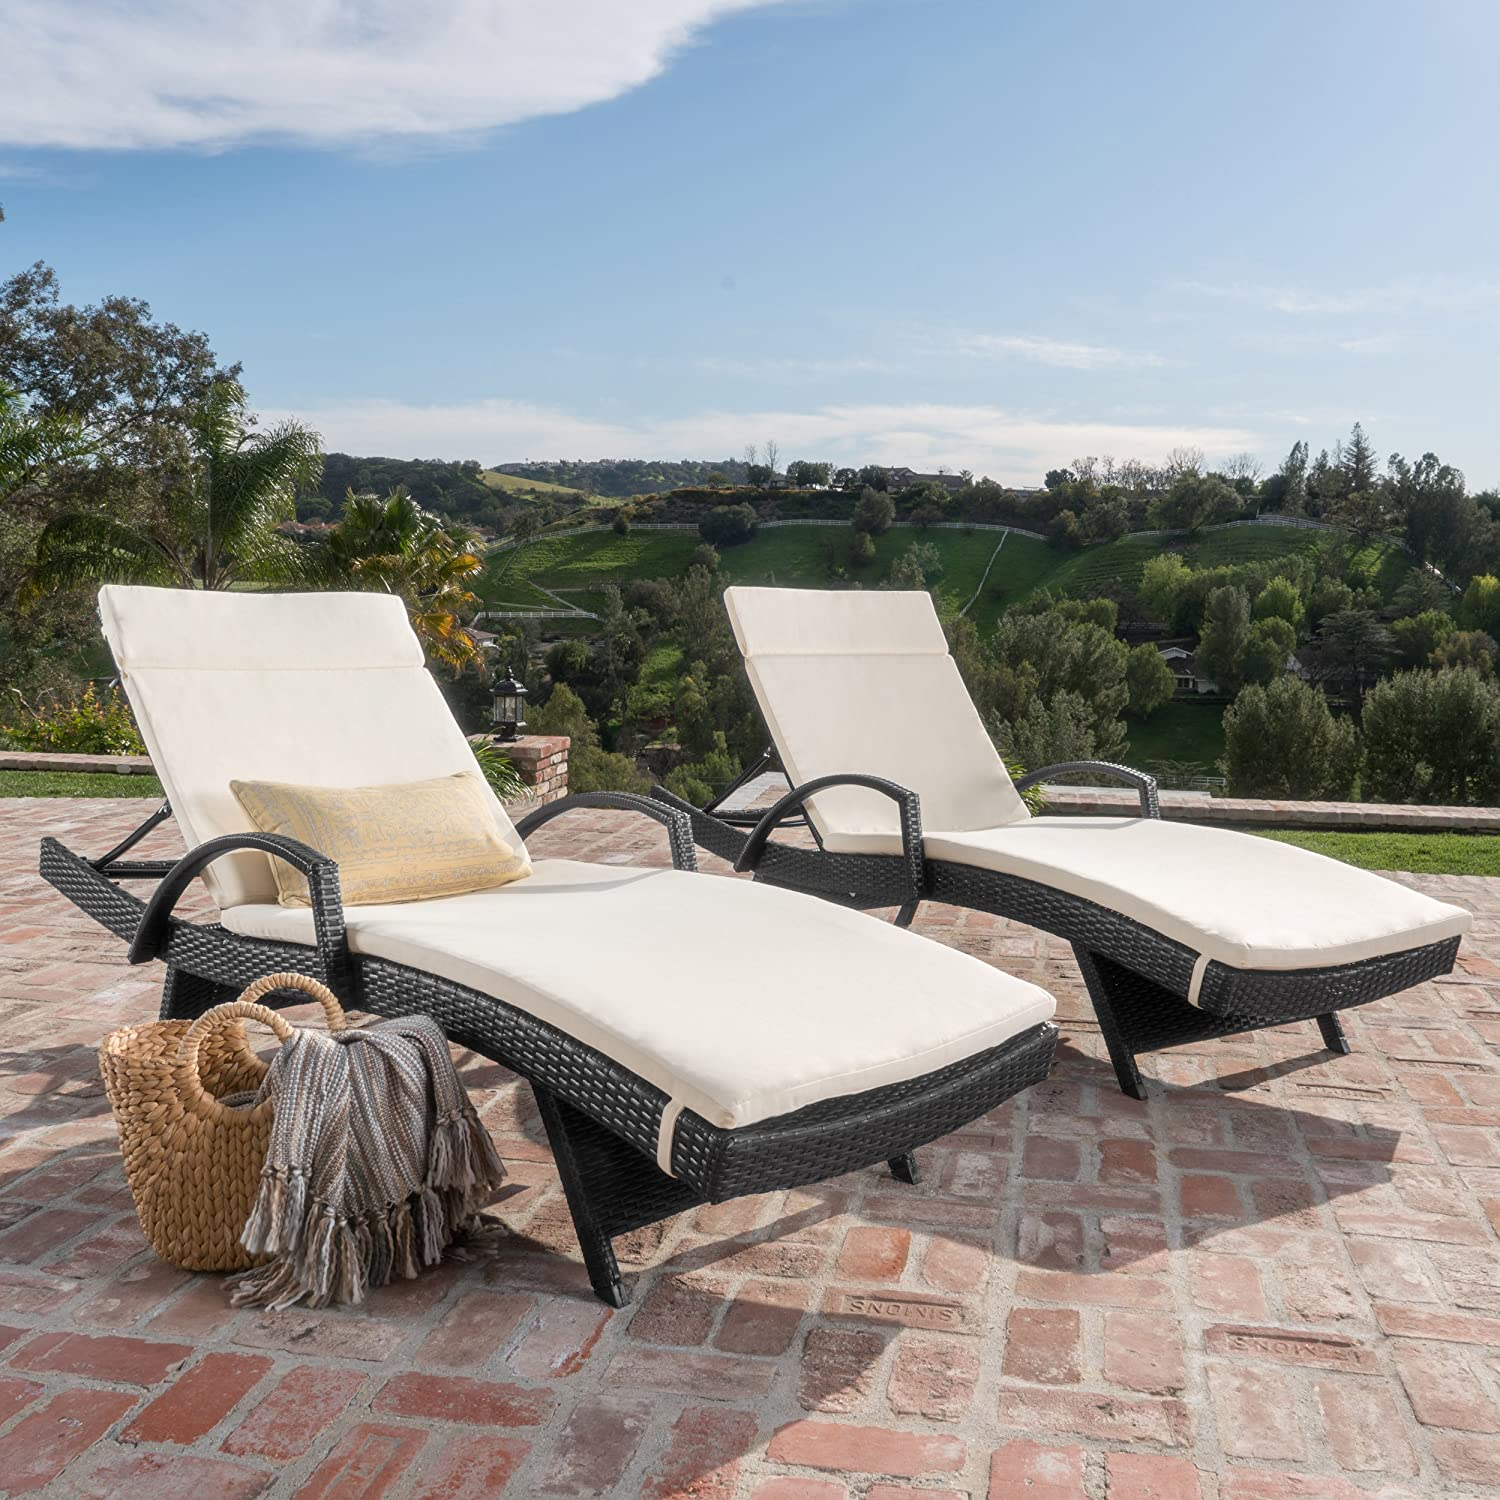 Amazon Com Olivia Patio Furniture Outdoor Wicker Chaise Lounge Chair With Arms W Water Resistant Cushions Set Of 2 Grey With Beige Garden Outdoor